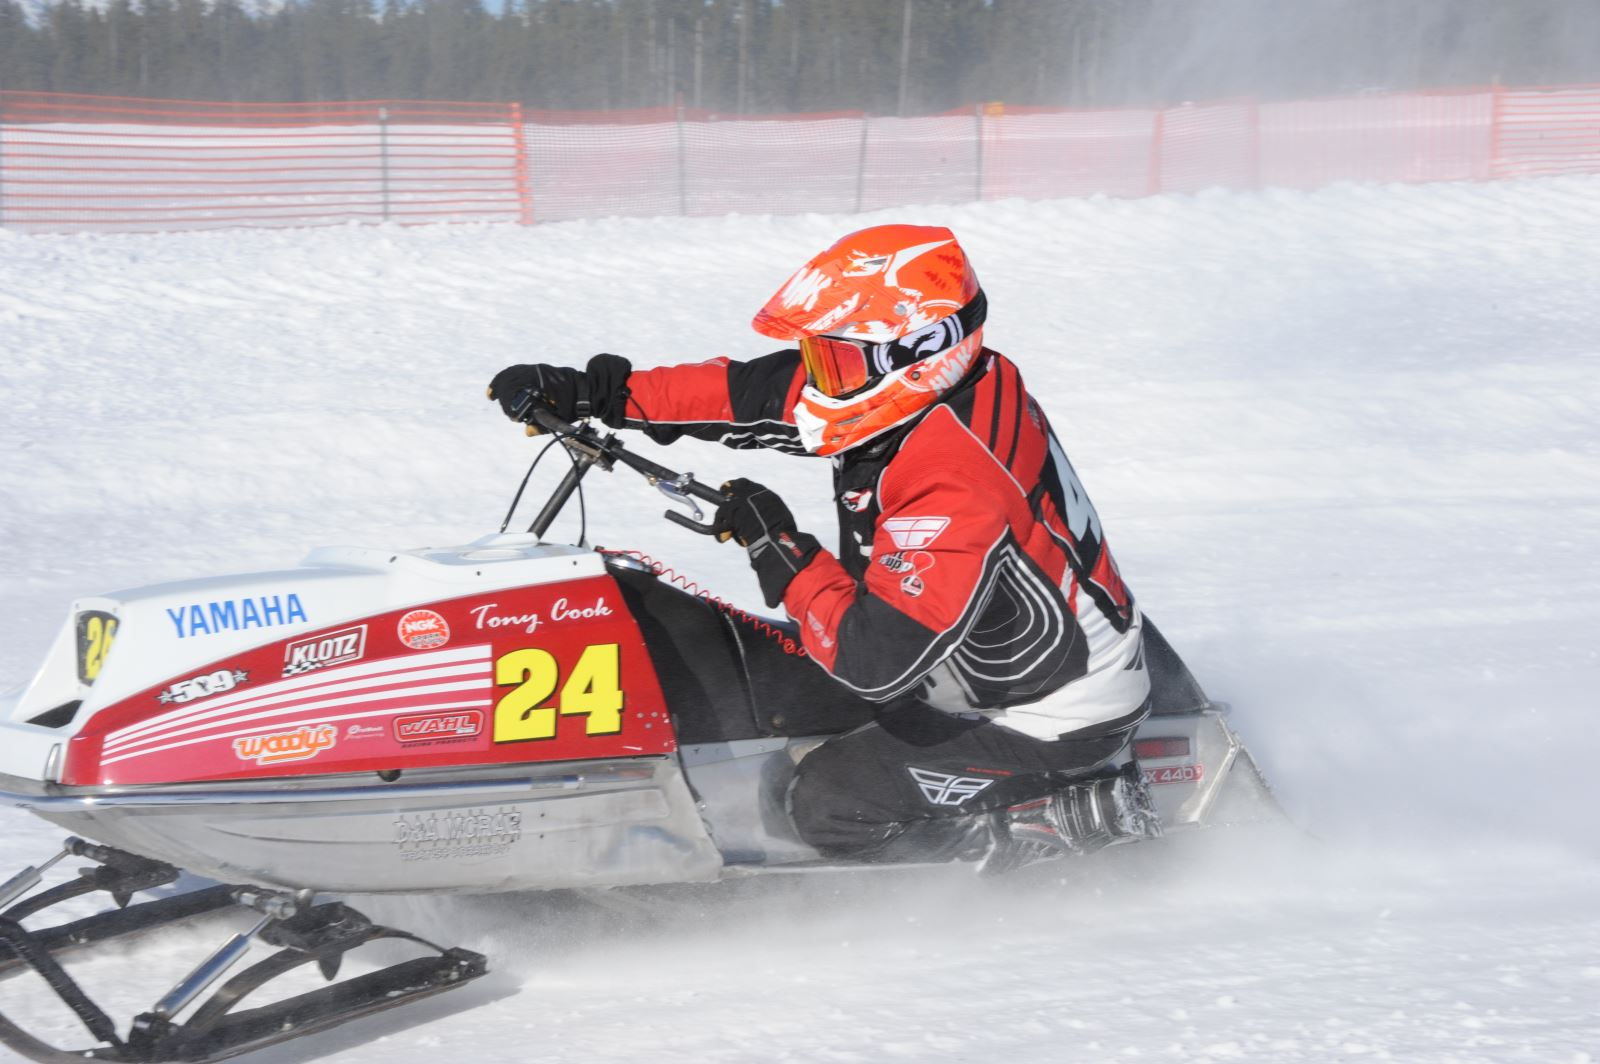 SnoWest 40th Anniversary Vintage Oval Racing Invades West